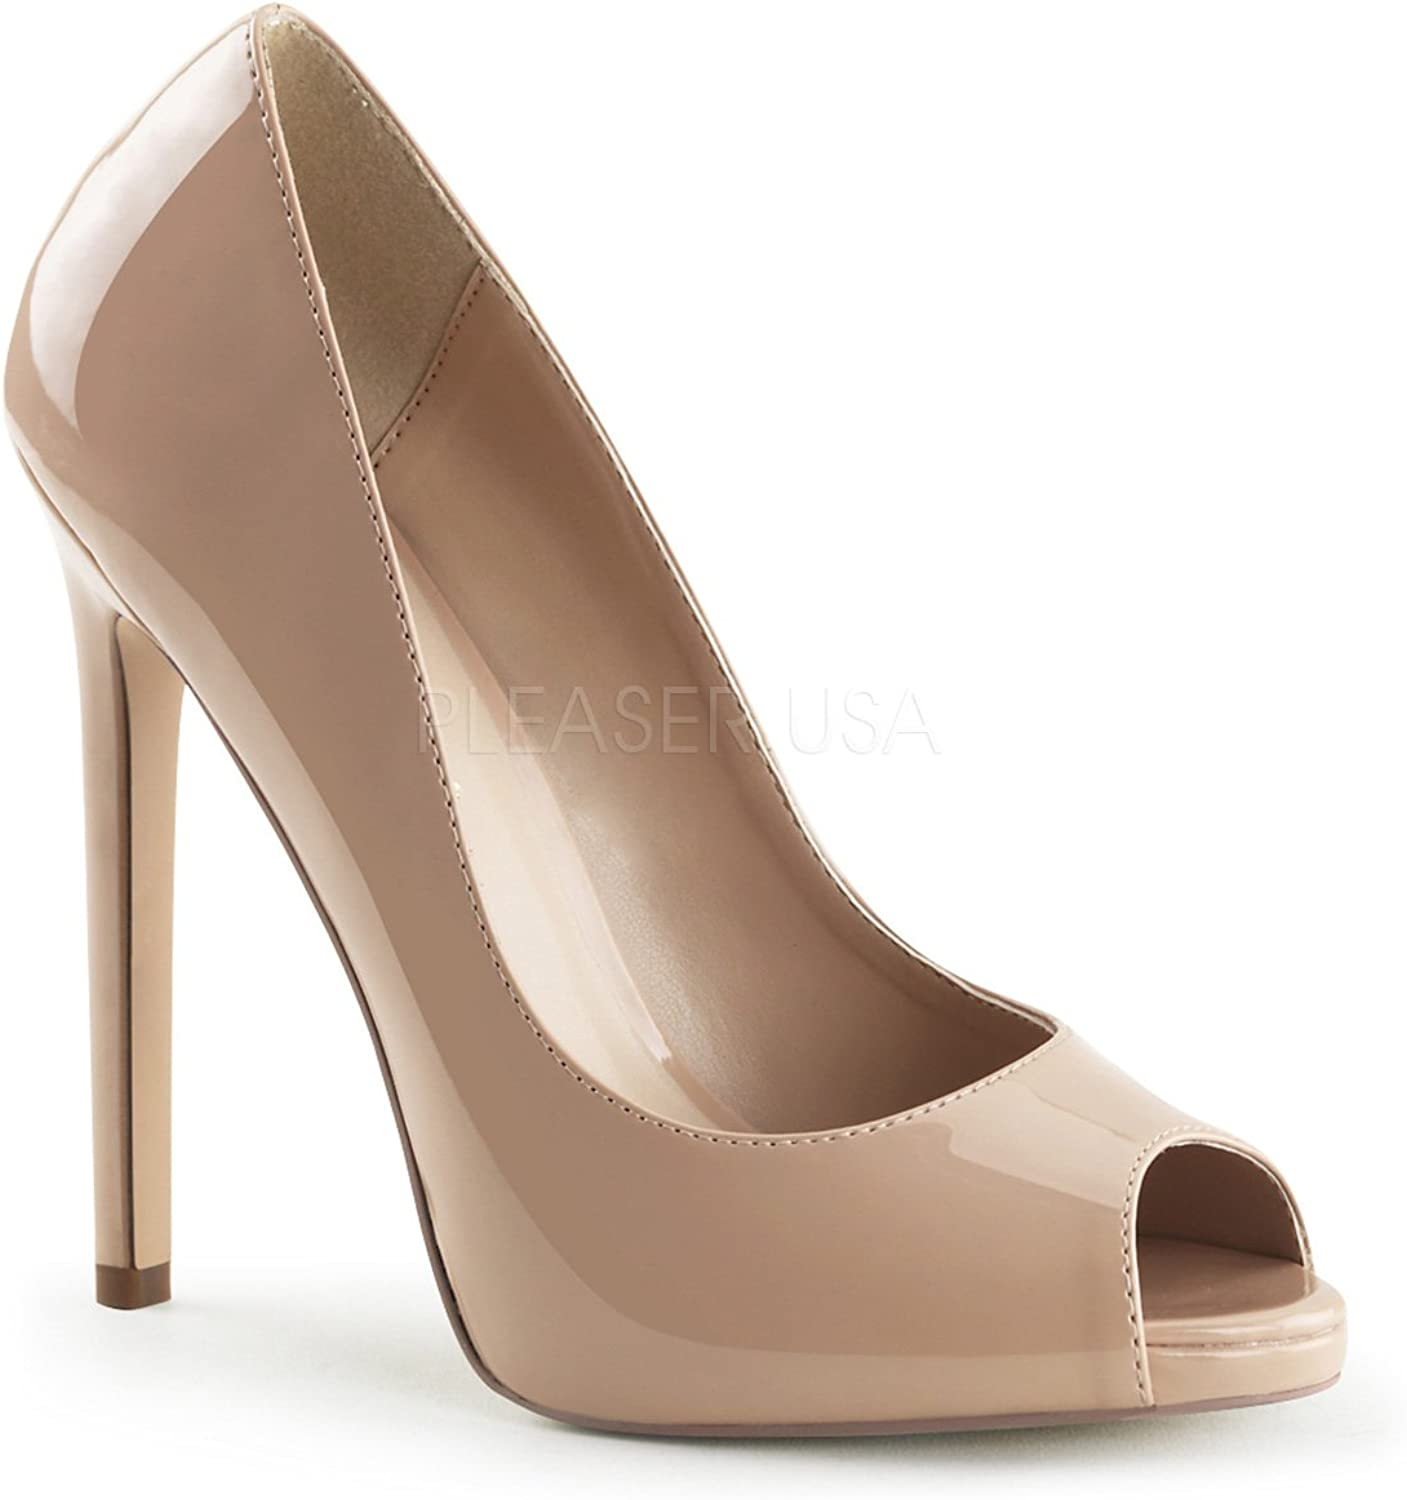 Pleaser Womens SEXY42 R Dress Pump